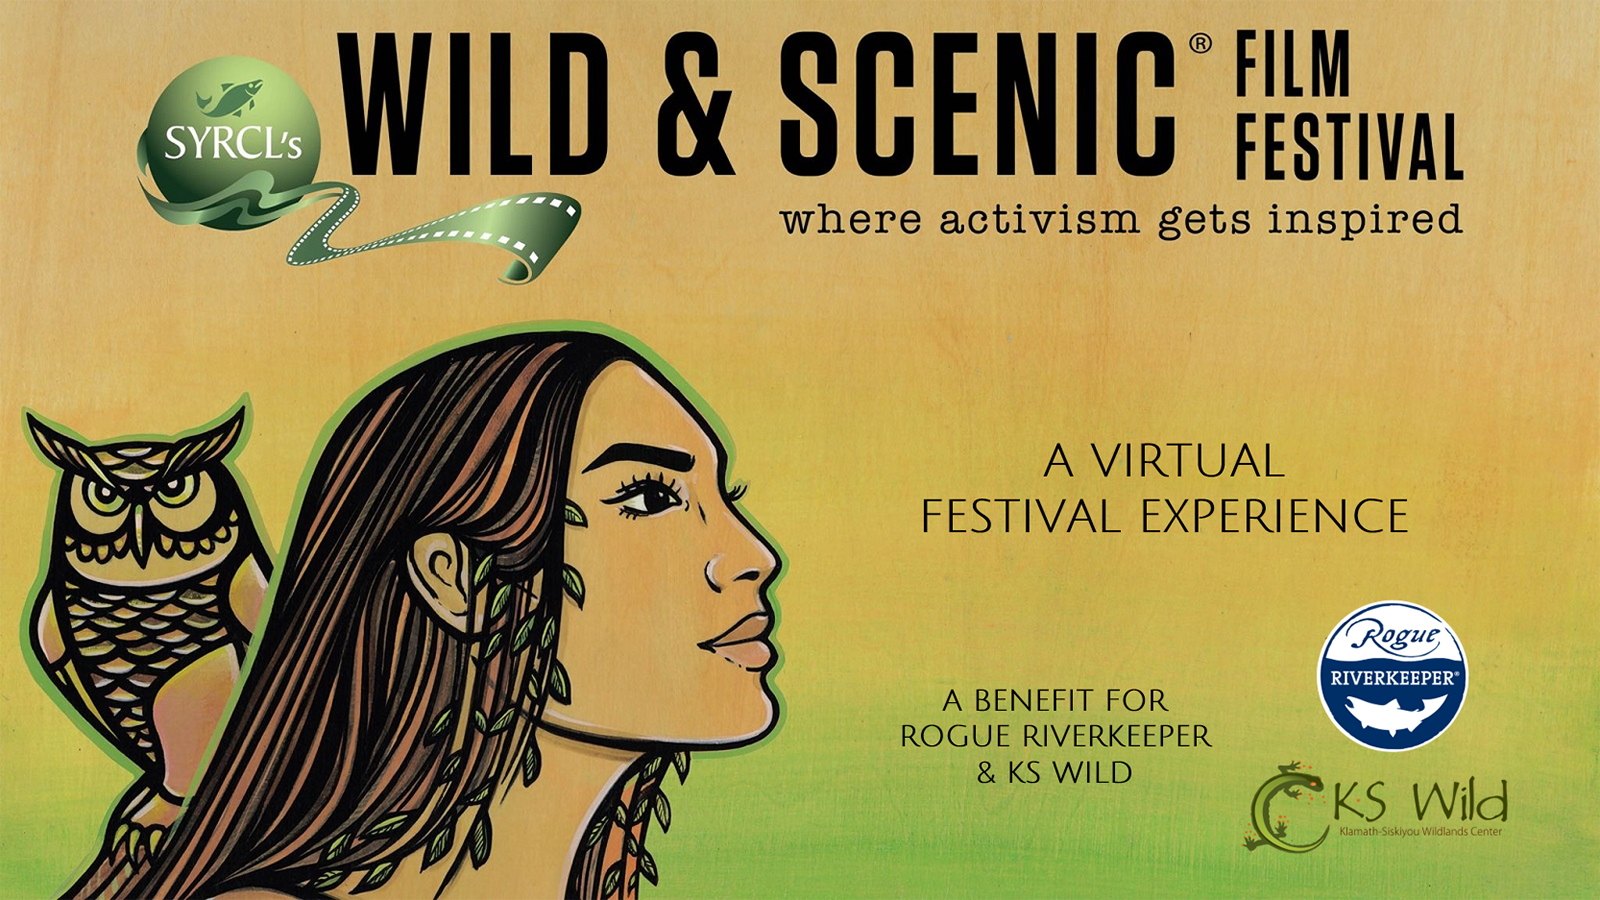 Rogue Riverkeeper & KS Wild Present SYRCL's Wild & Scenic Film Festival On Tour